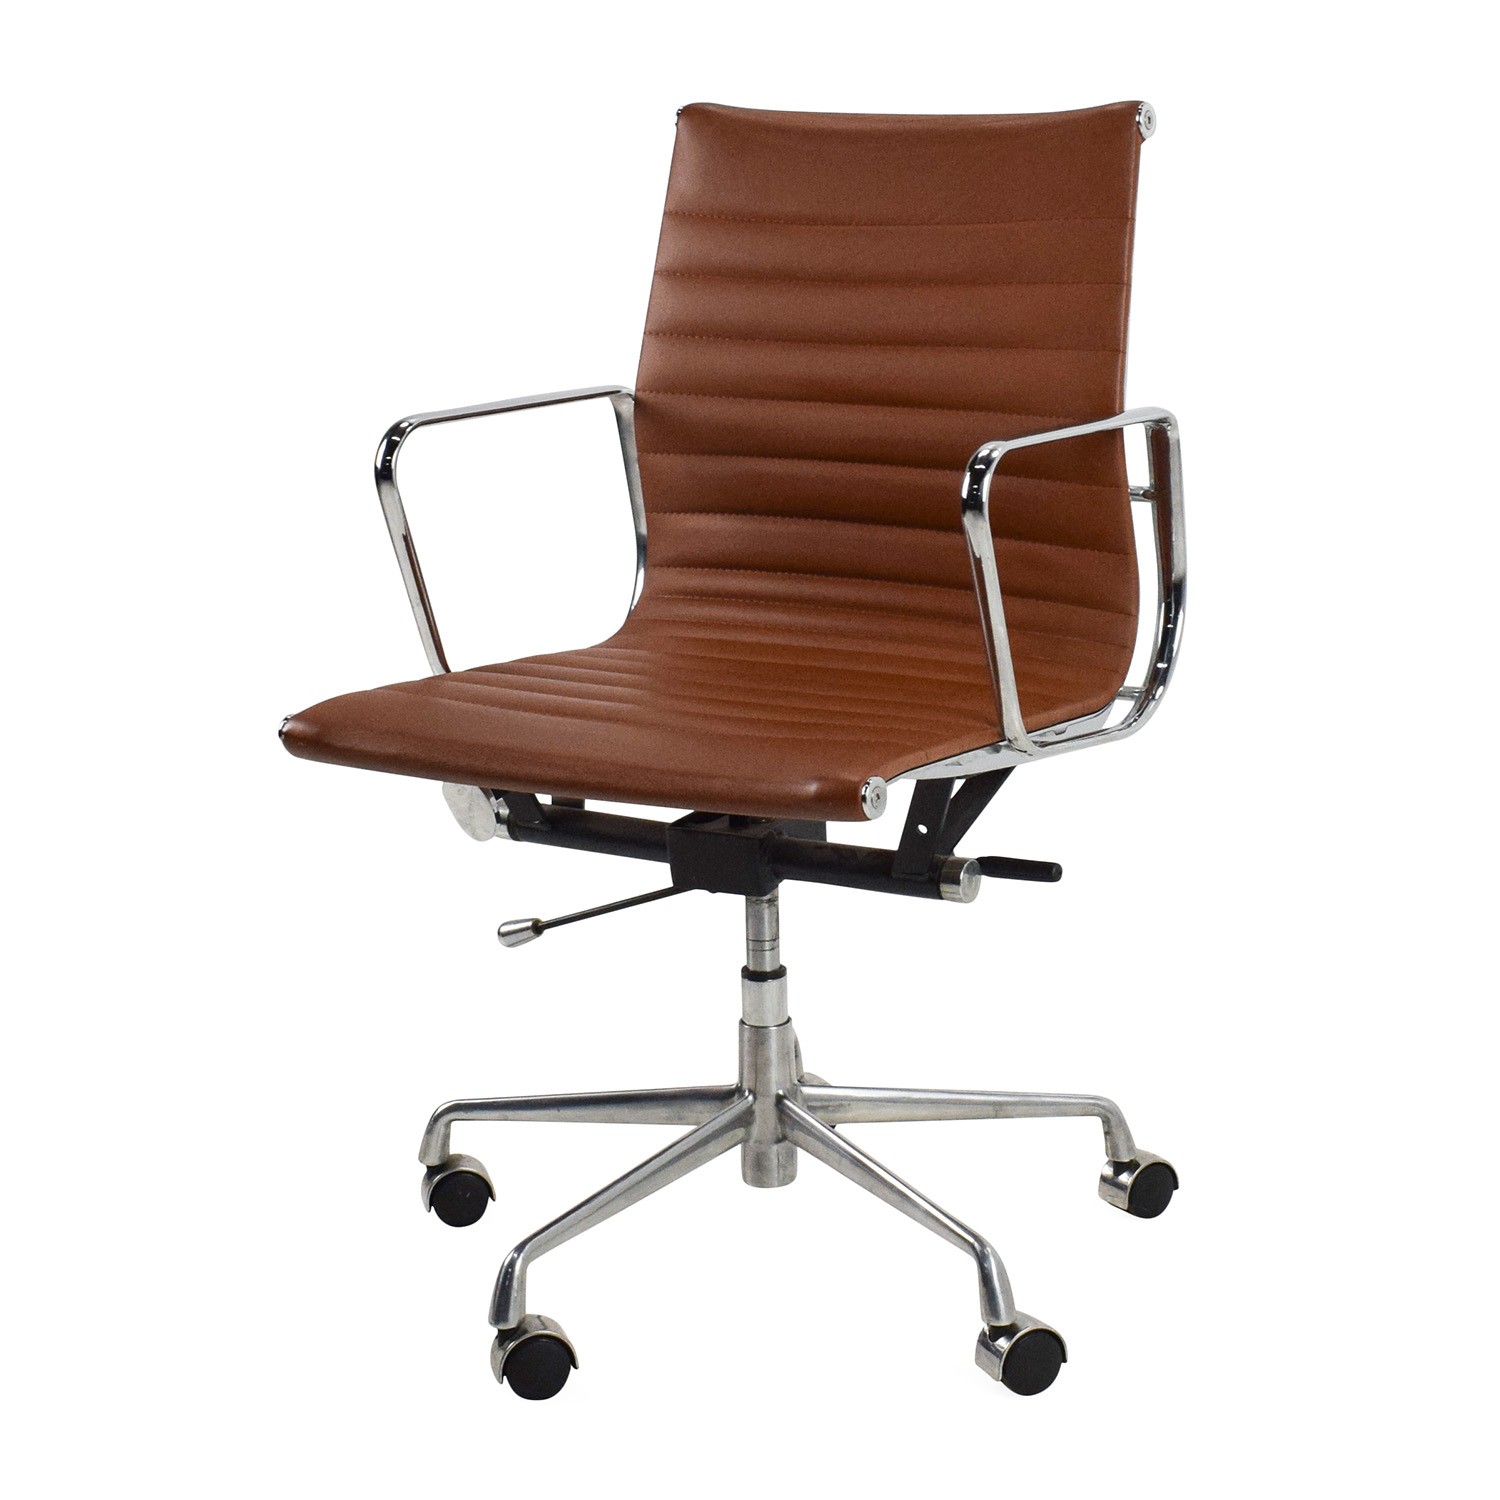 Unknown Brand Chrome Office Chair